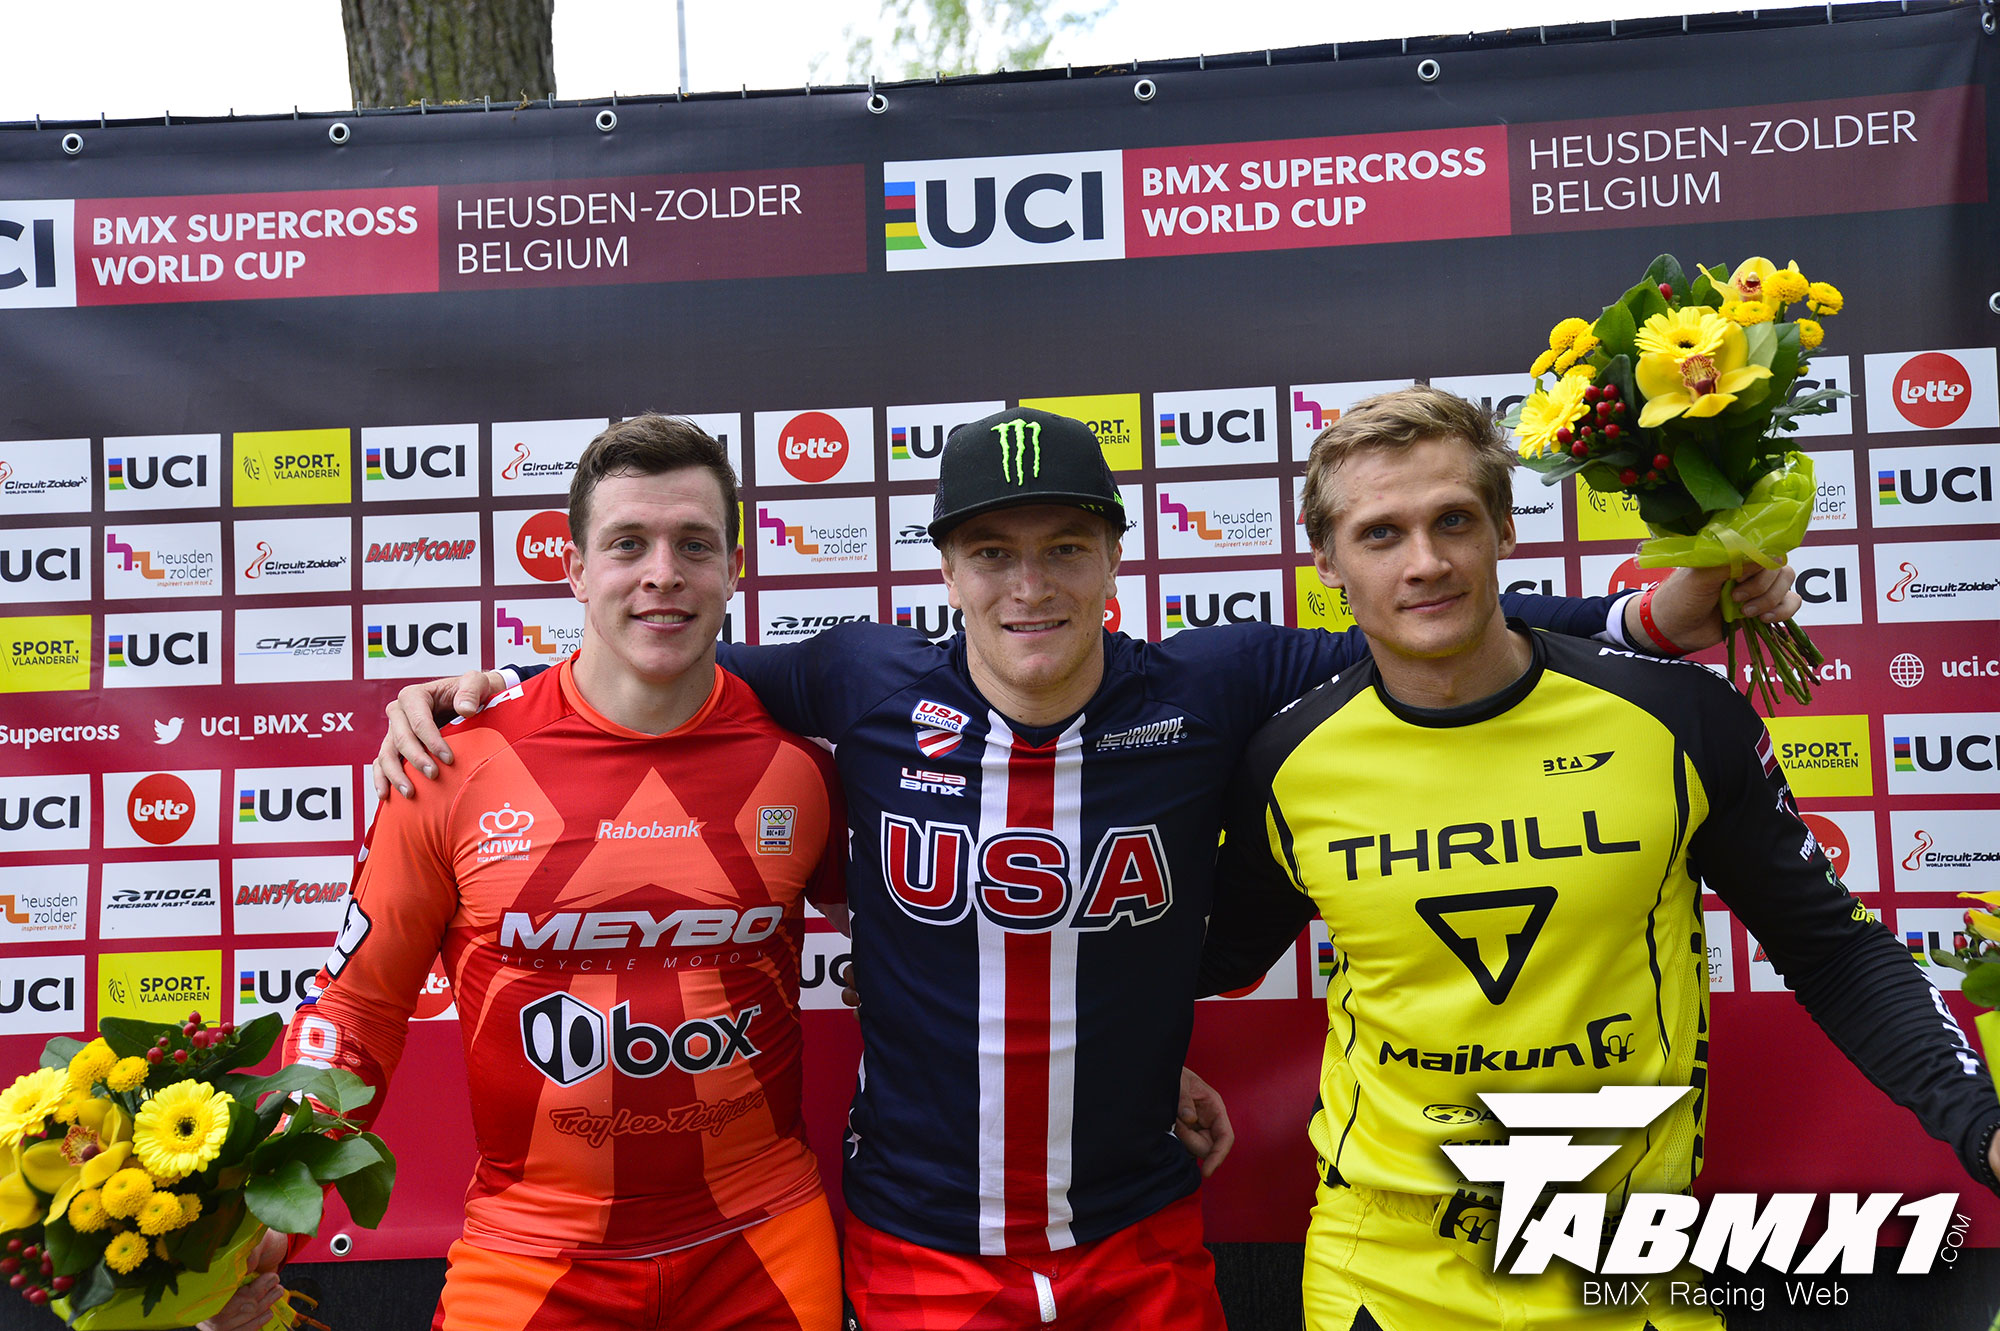 UCI SX RD 3 ZOLDER: Victoire des Champions Olympiques !